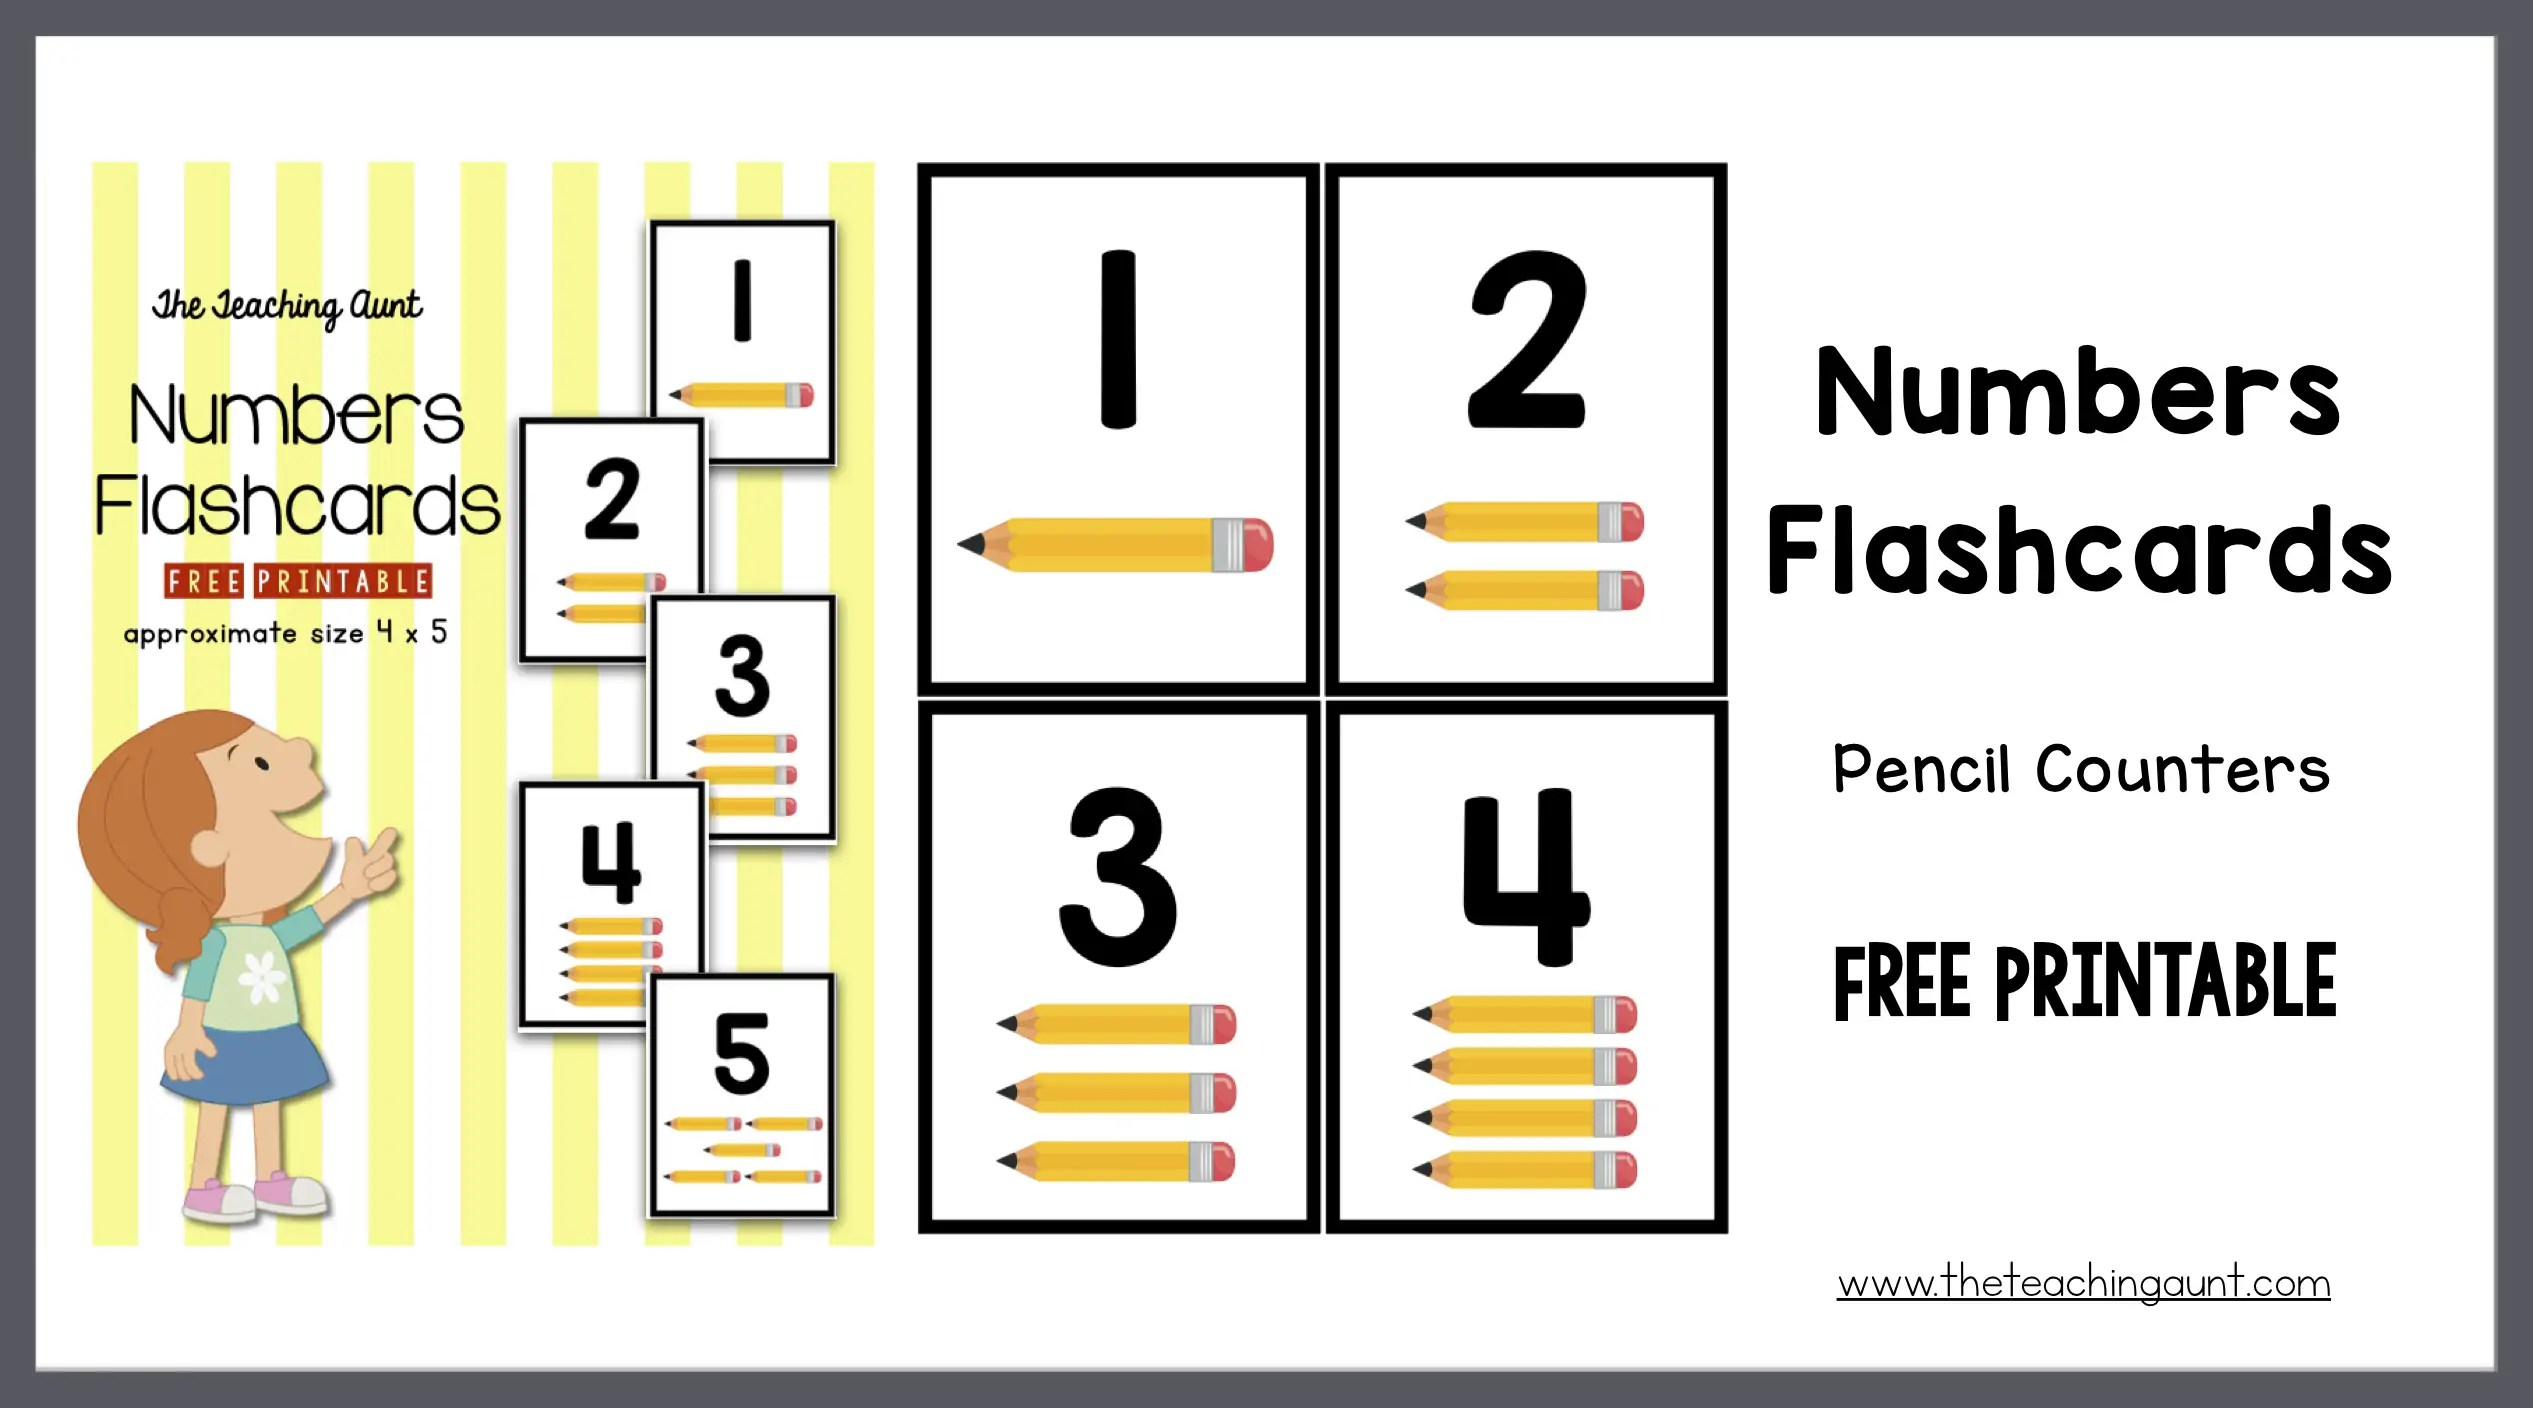 graphic regarding Printable Numbers Flashcards known as Figures Flashcards Pencil Counters - The Coaching Aunt